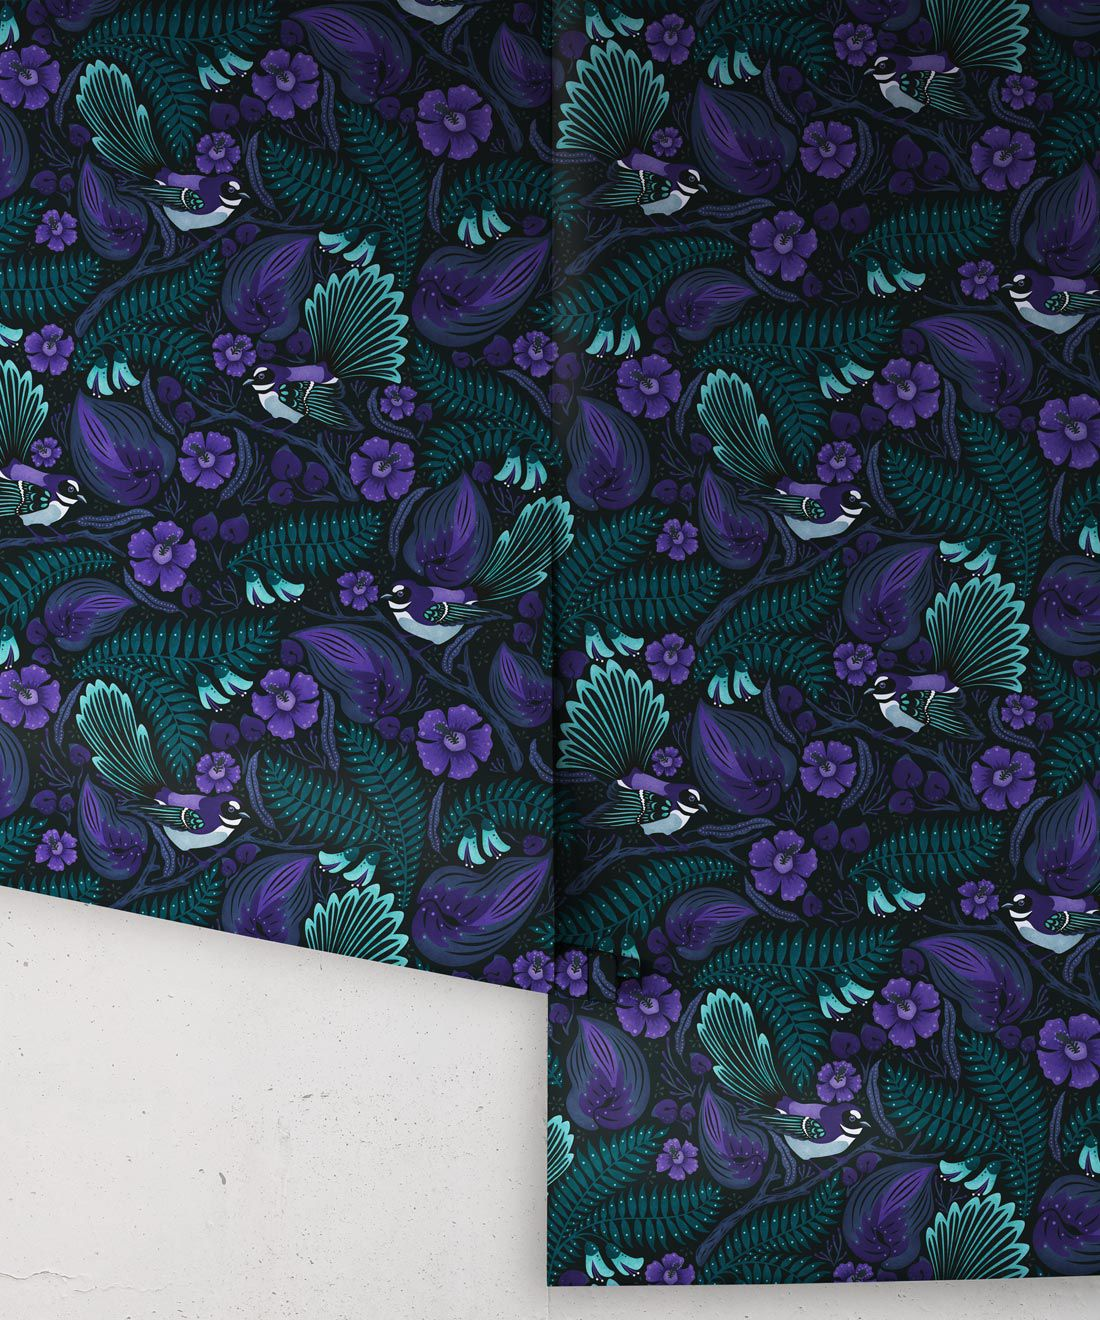 Faintails Wallpaper • New Zealand • Bird Wallpaper • Kowhai Tree • Kowhai Flowers • Dark Purple Blue Wallpaper • Midnight Colorway • Wallpaper Rolls